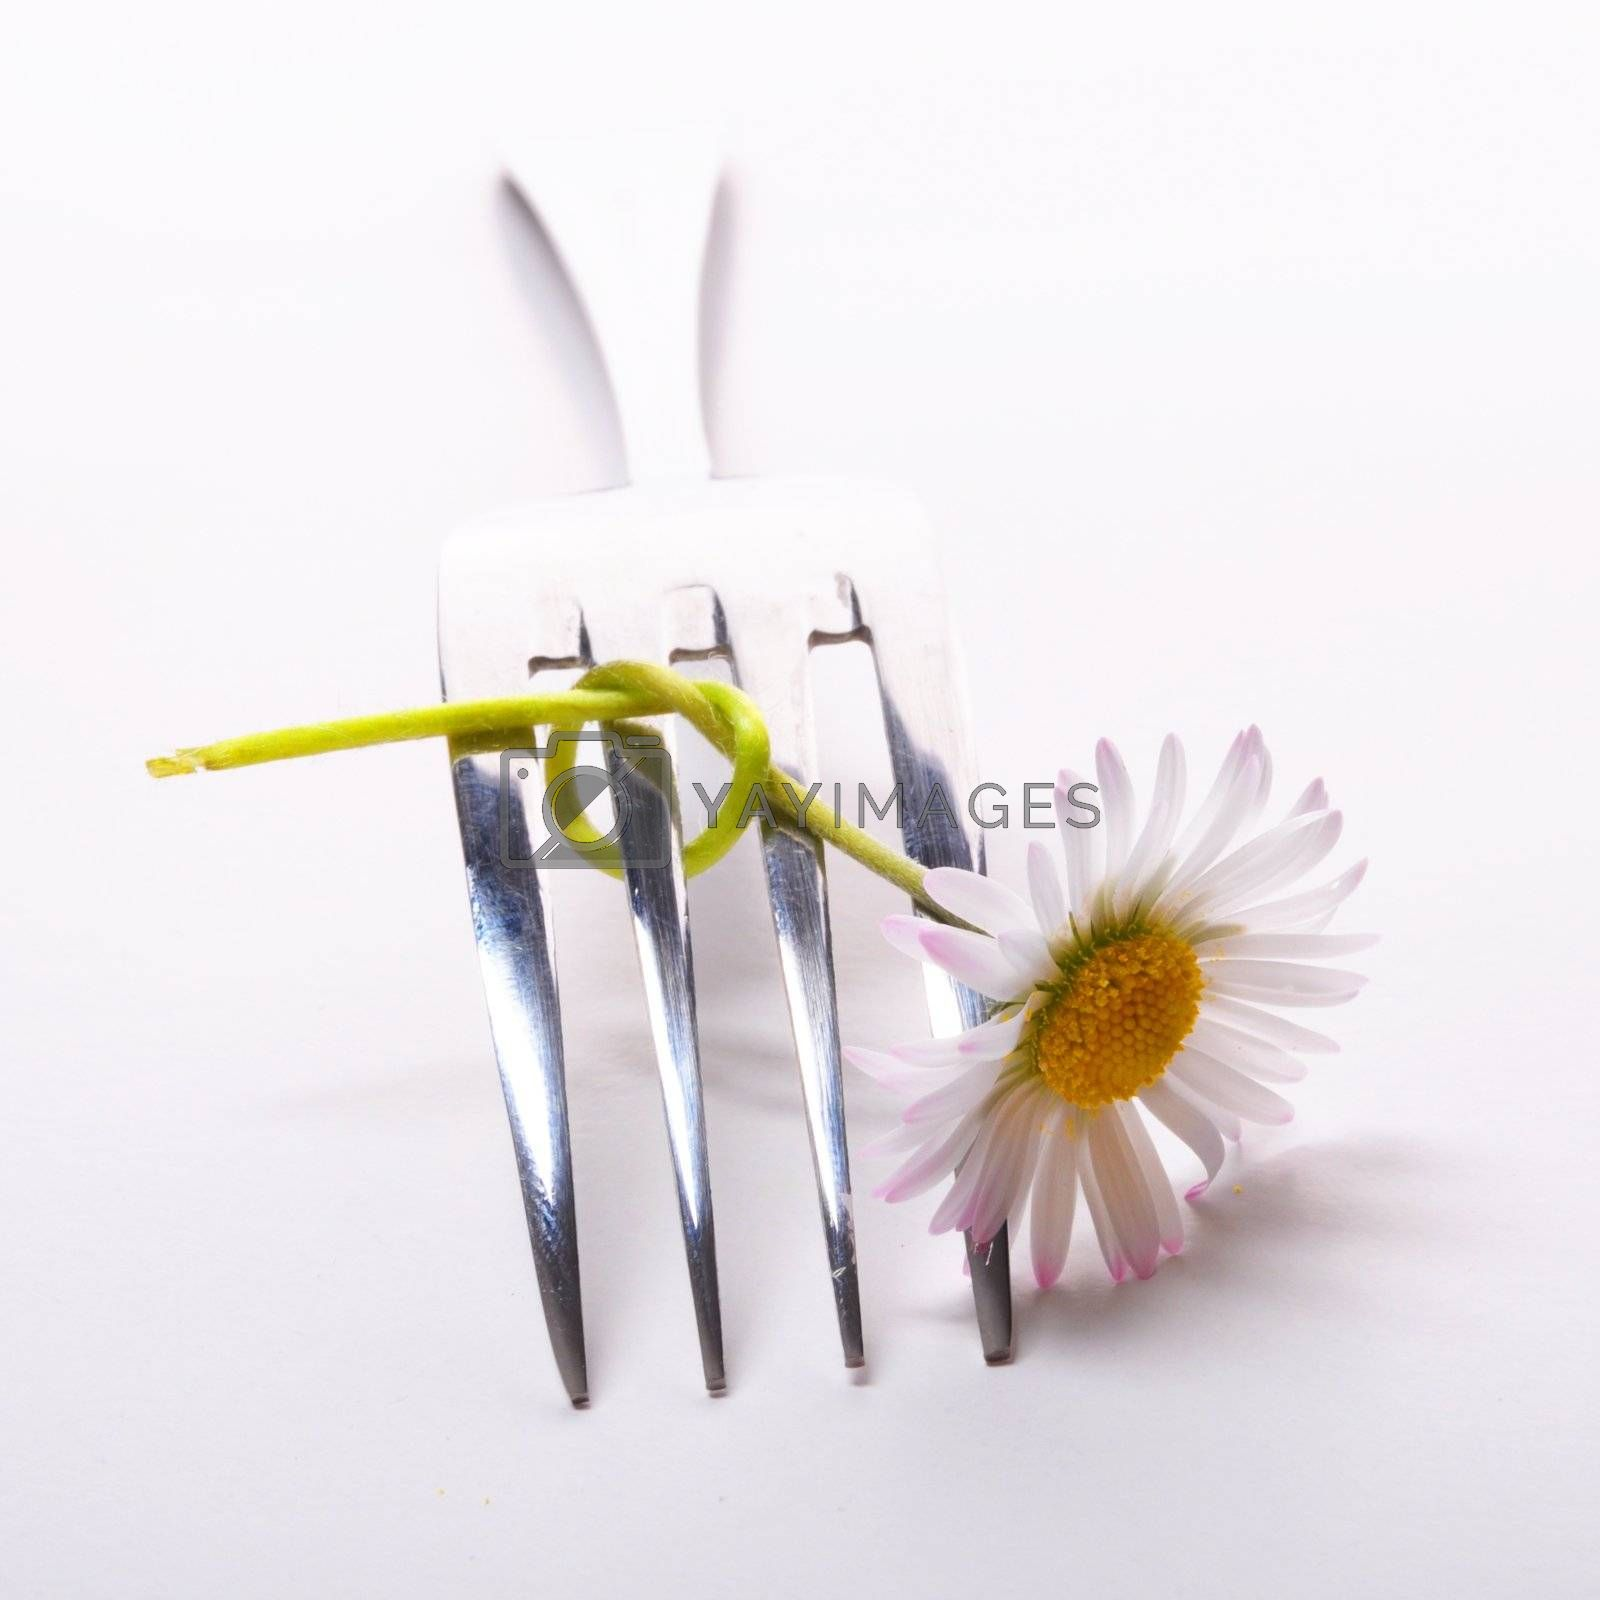 food concept with flower and fork on white table in summer